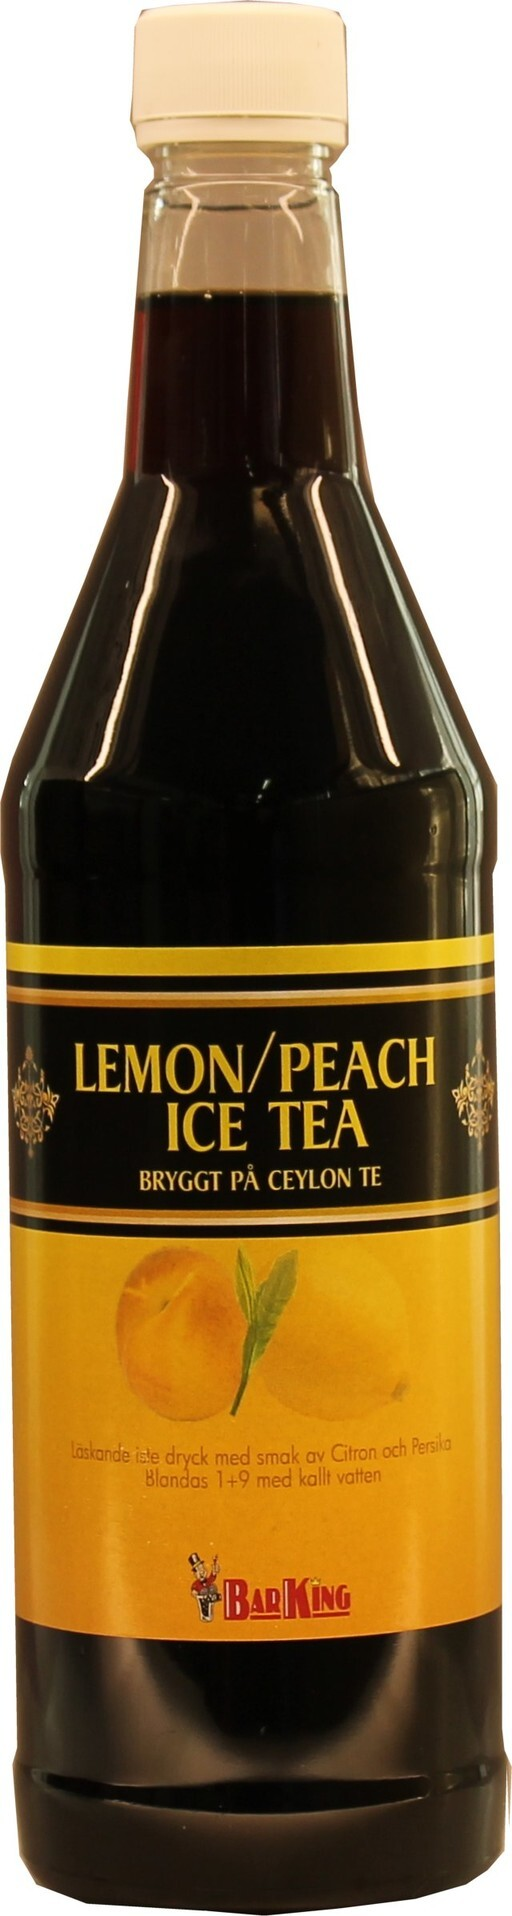 Lemon Peach 75 cl